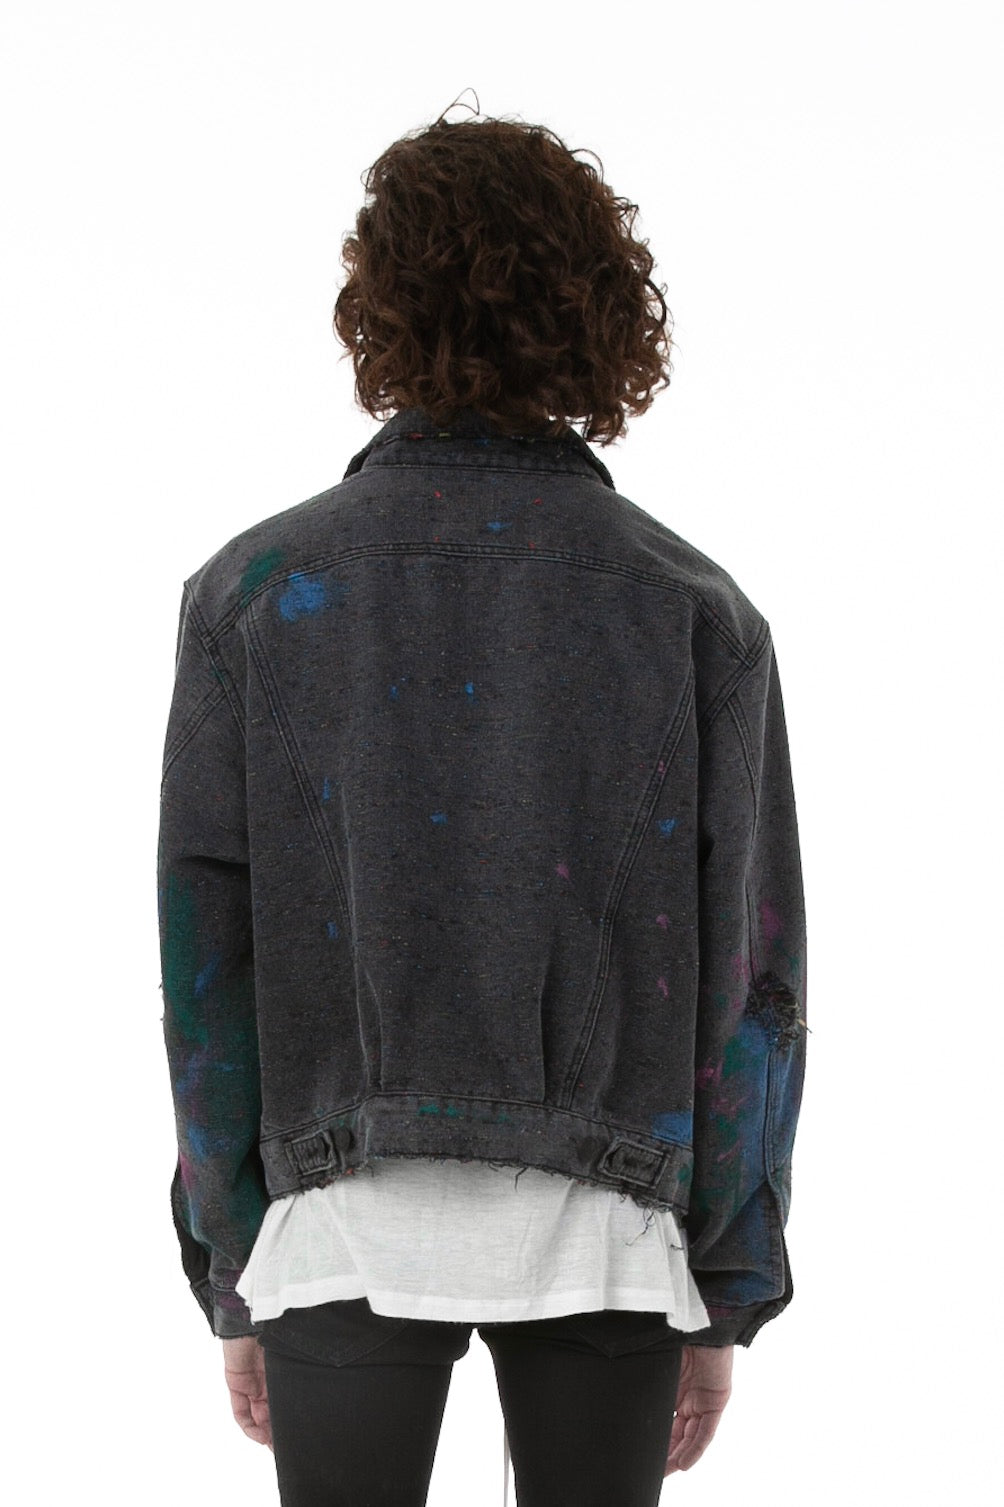 Back of Male Model Wearing Artists' Denim Jacket